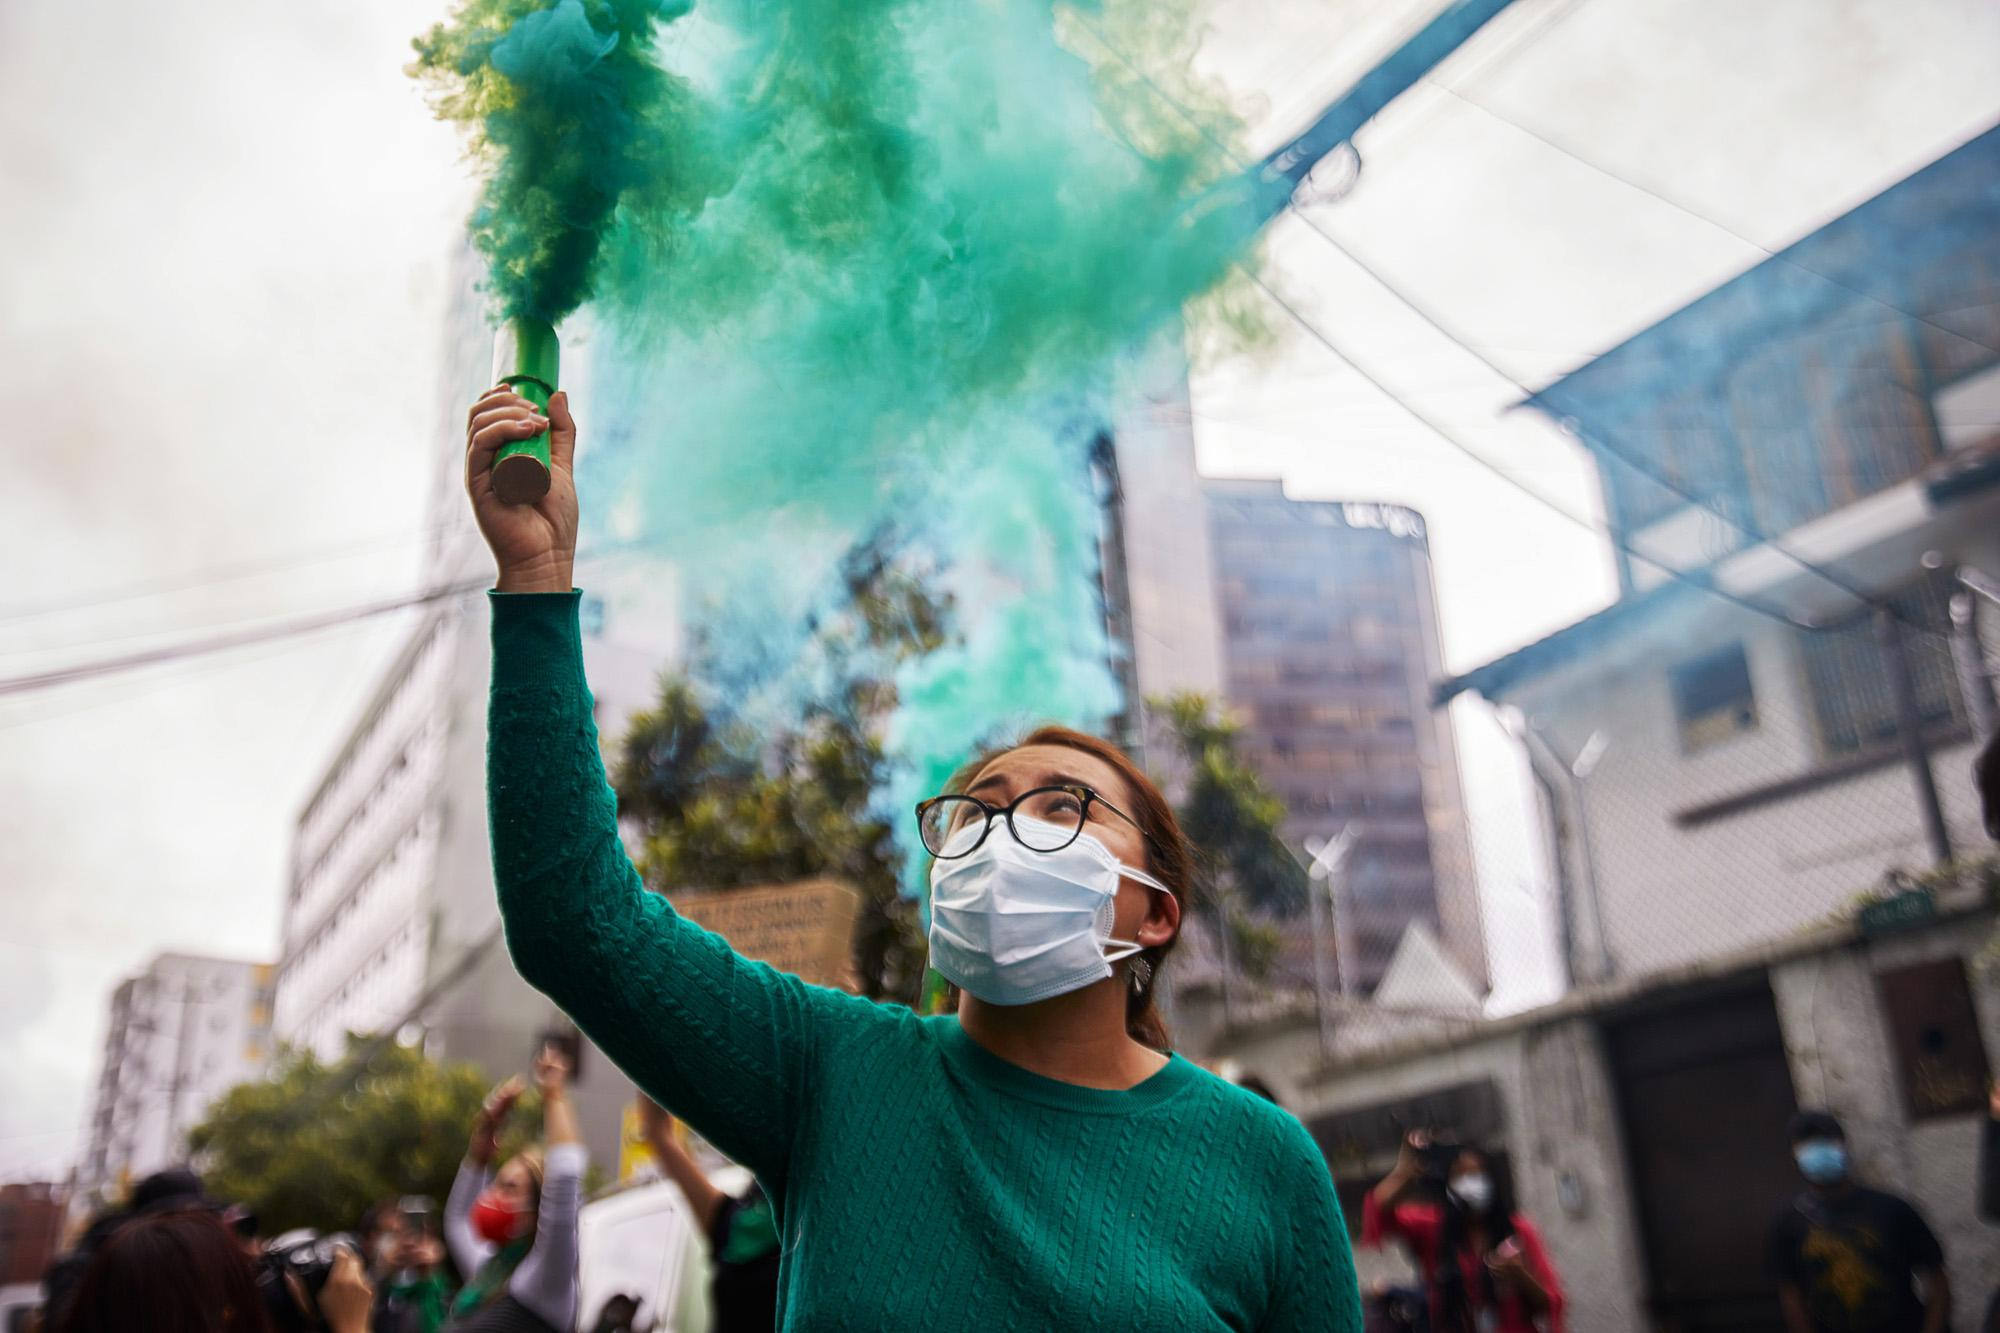 A woman holds a flare after the announcement of Ecuador's Constitutional Court ruling decriminalizing abortion in cases of rape of girls and women in the country. The color green has become a global symbol in the struggle for women's right to decide. April 28, 2021, Quito, Ecuador.